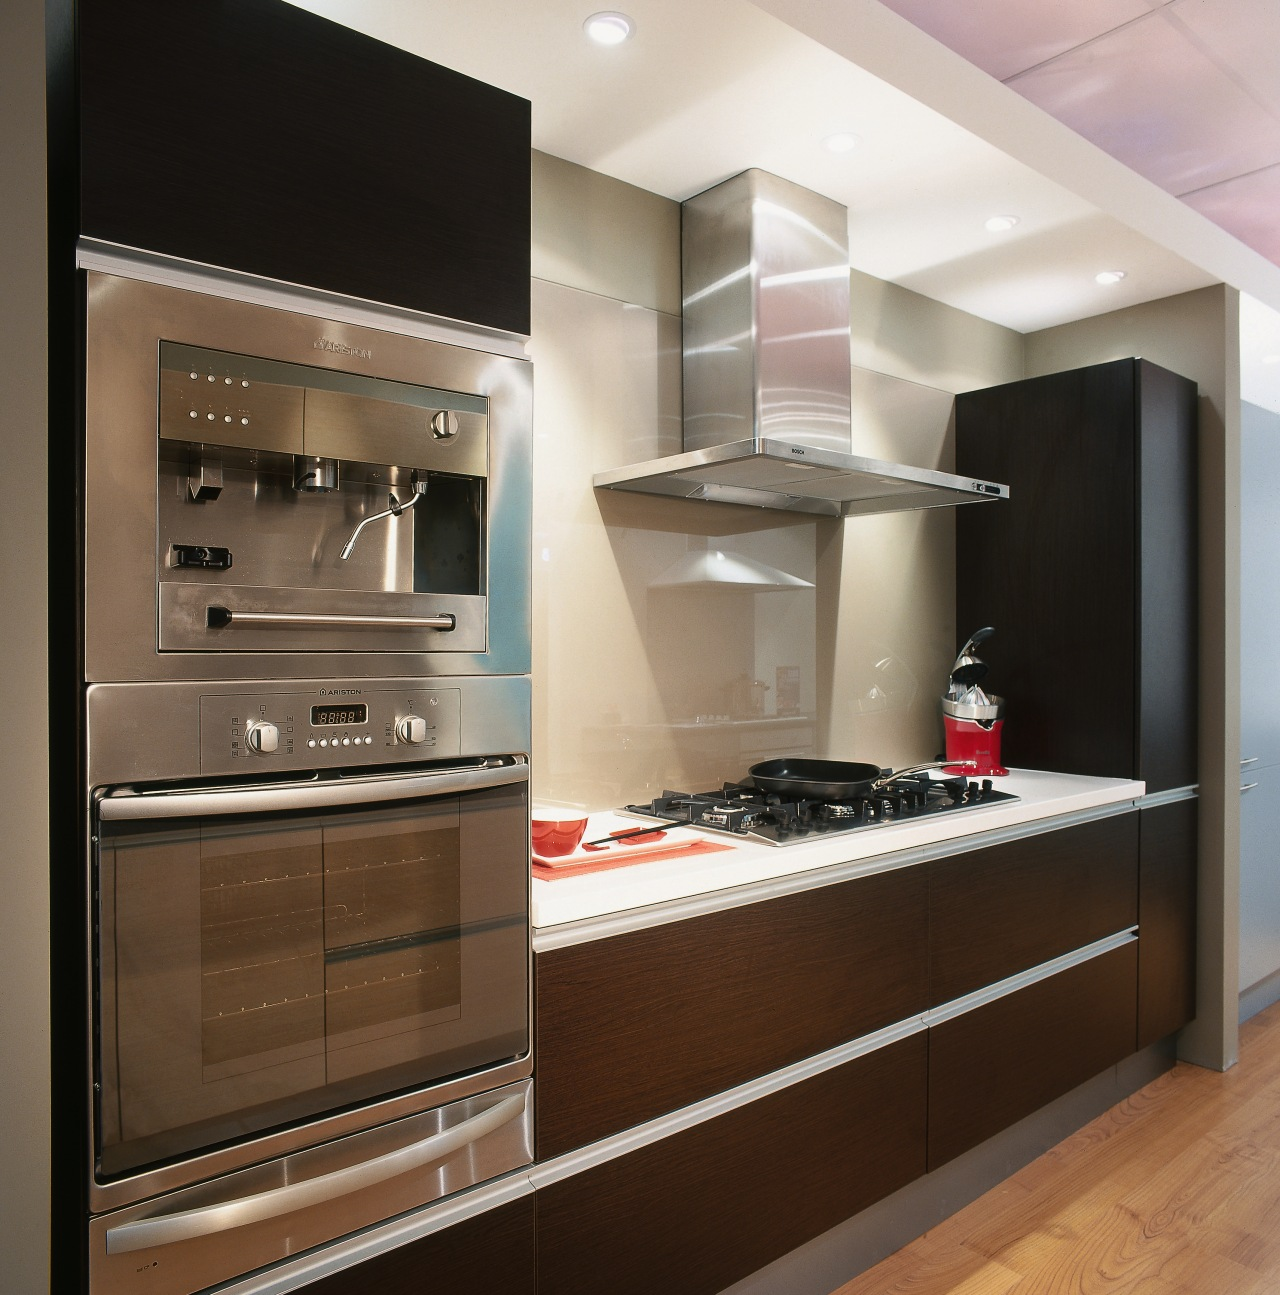 An example of the displays within Harvey Norman cabinetry, countertop, cuisine classique, furniture, home appliance, interior design, kitchen, kitchen appliance, brown, gray